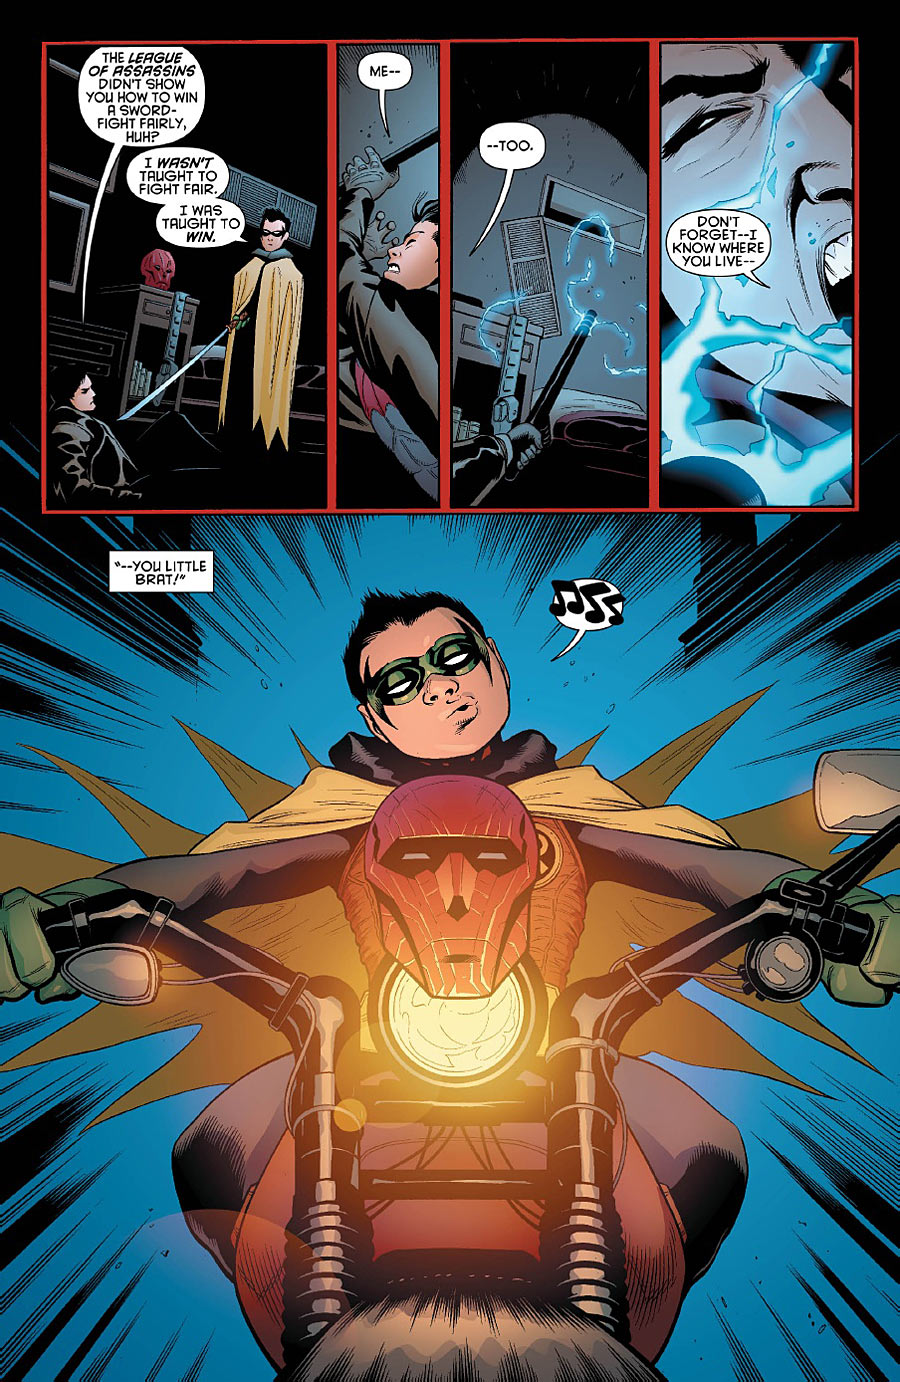 http://media.insidepulse.com/zones/insidepulse/uploads/2012/08/Damian-Wayne-vs-Jason-Todd-Batman-Robin-11.jpg